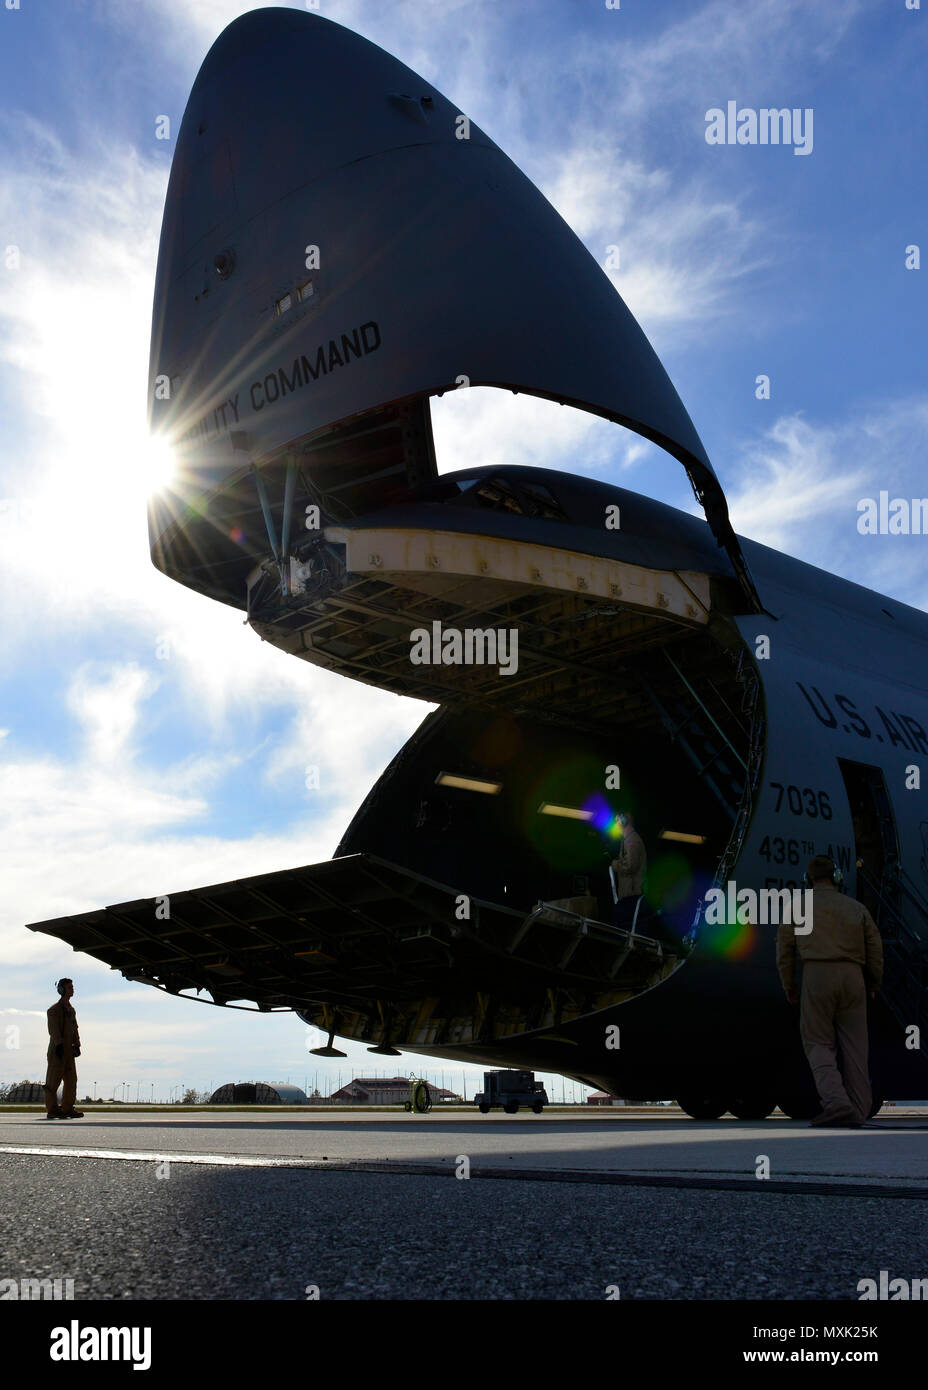 724th Ams Stock Photos & 724th Ams Stock Images - Alamy